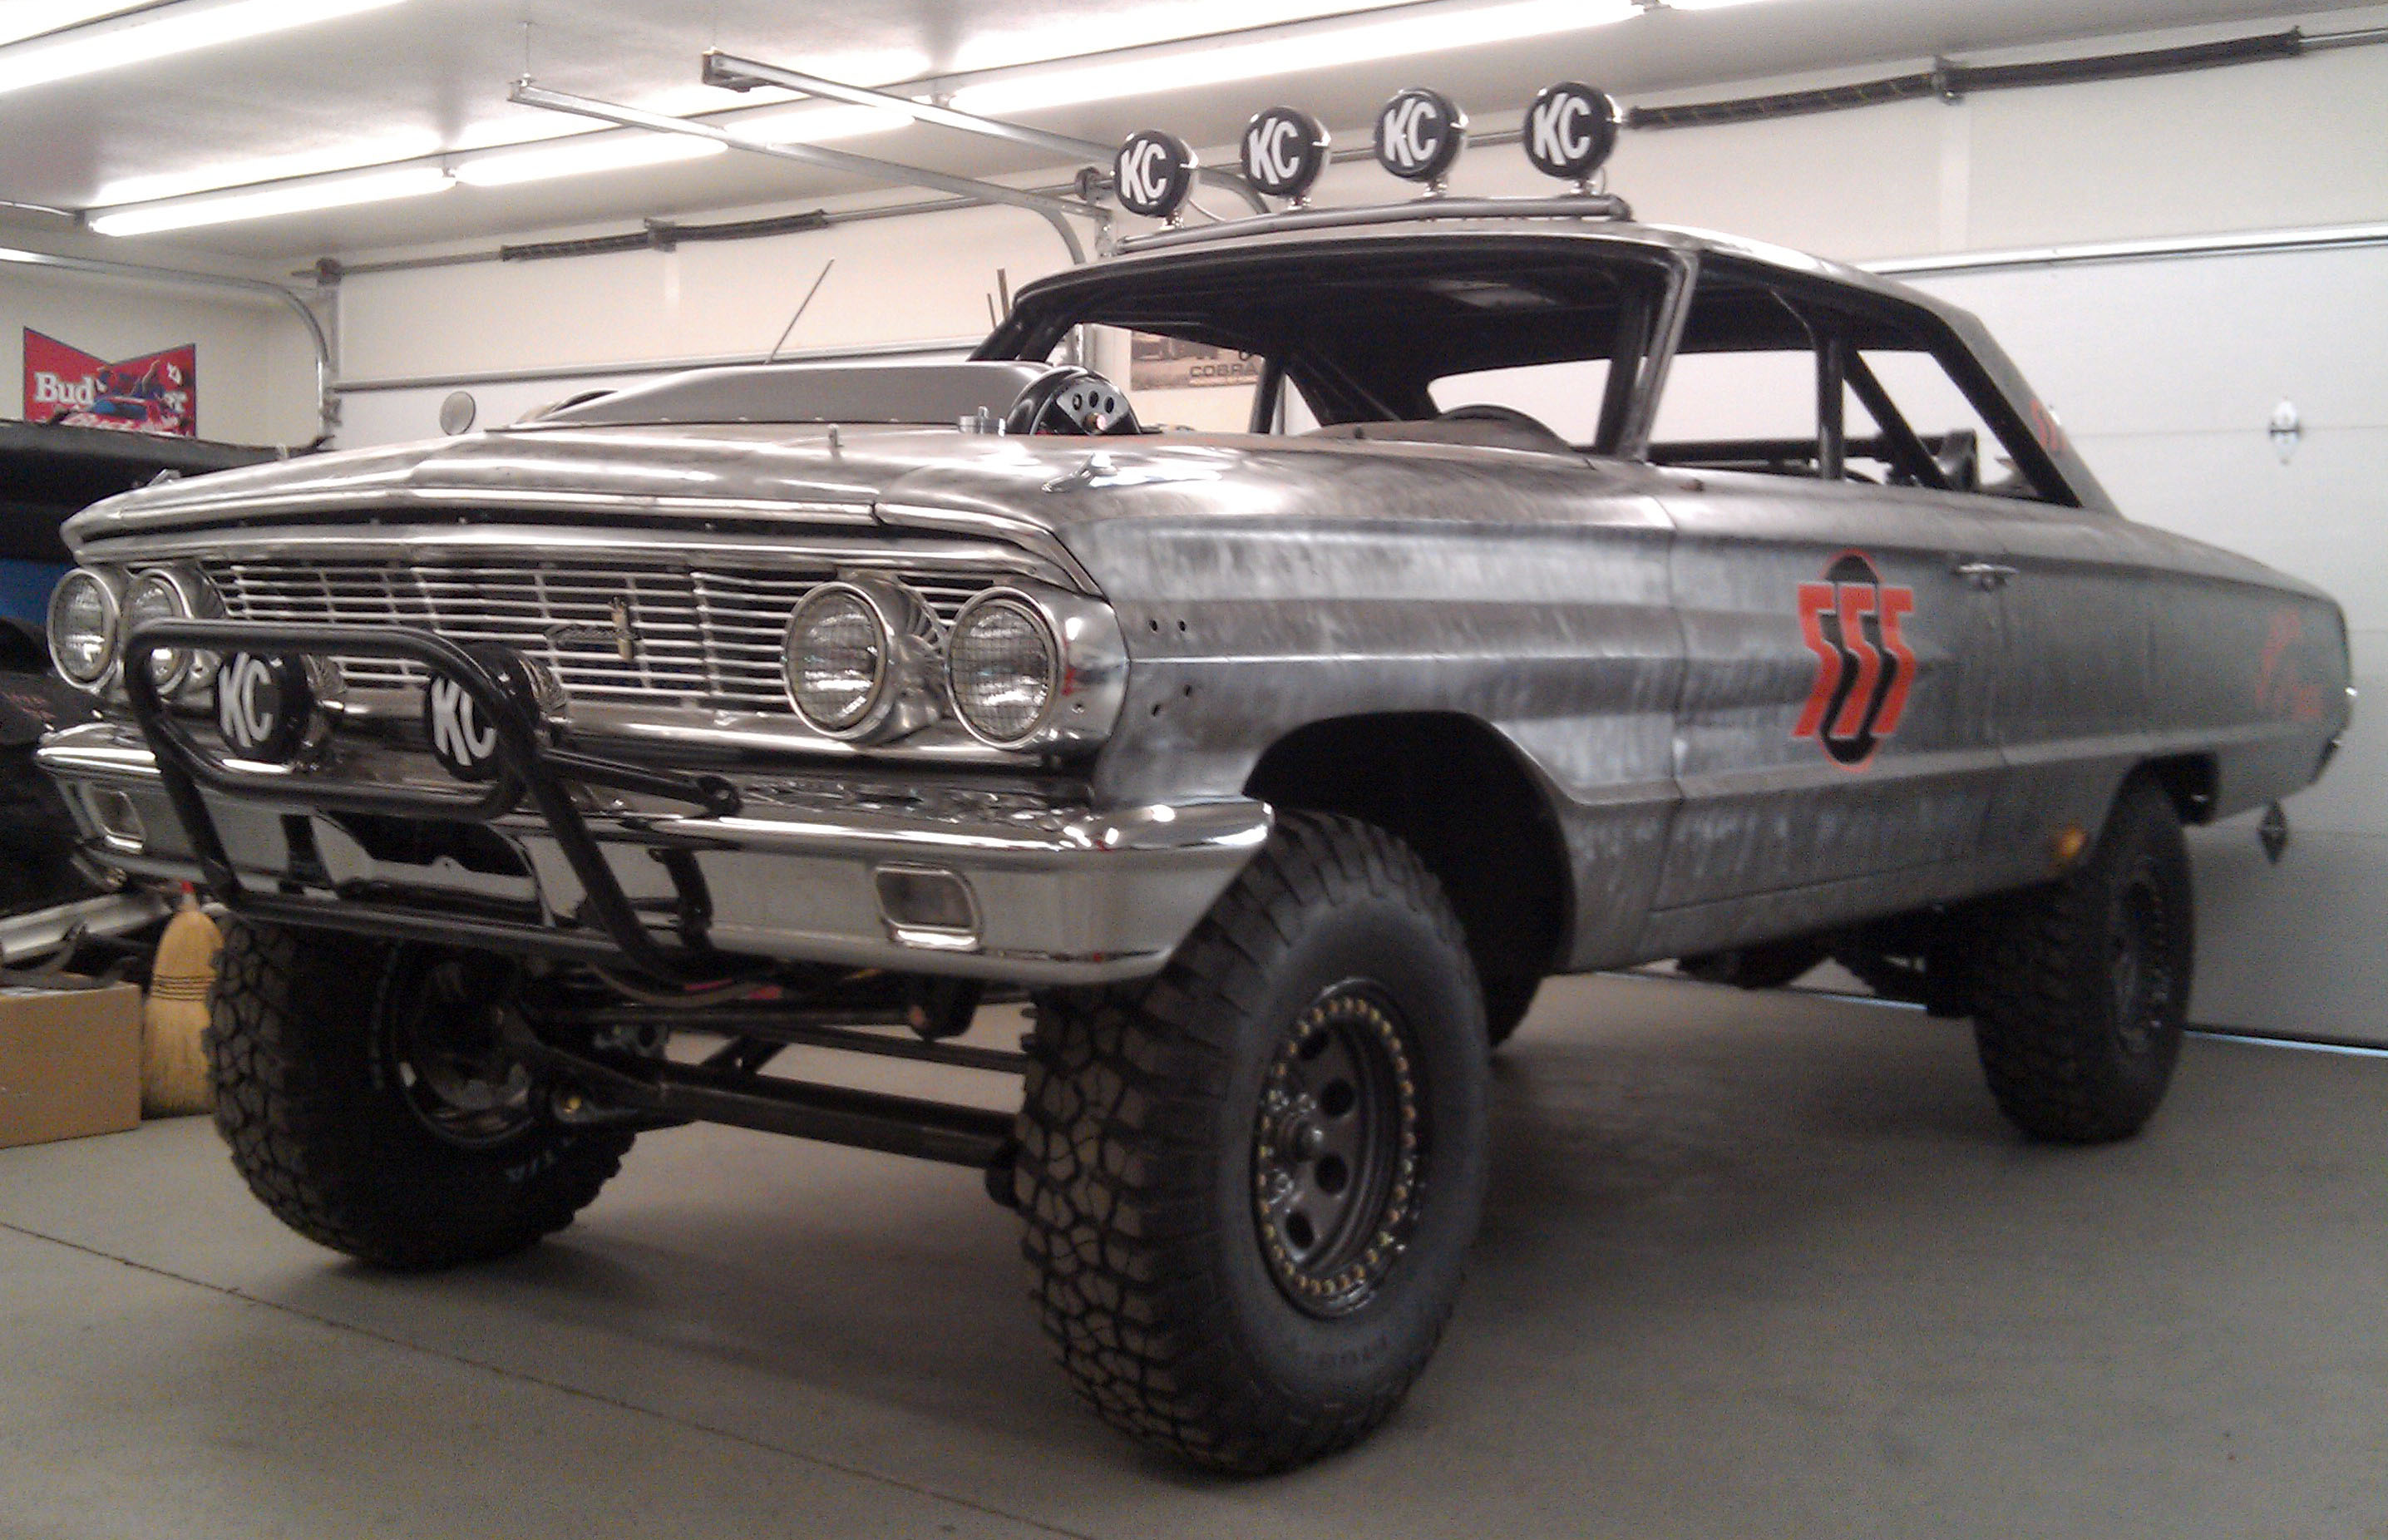 1964 Ford Galaxie For Mexican 1000 Baja Offroad Race - 1964 Ford Galaxie Hot Rod - HD Wallpaper